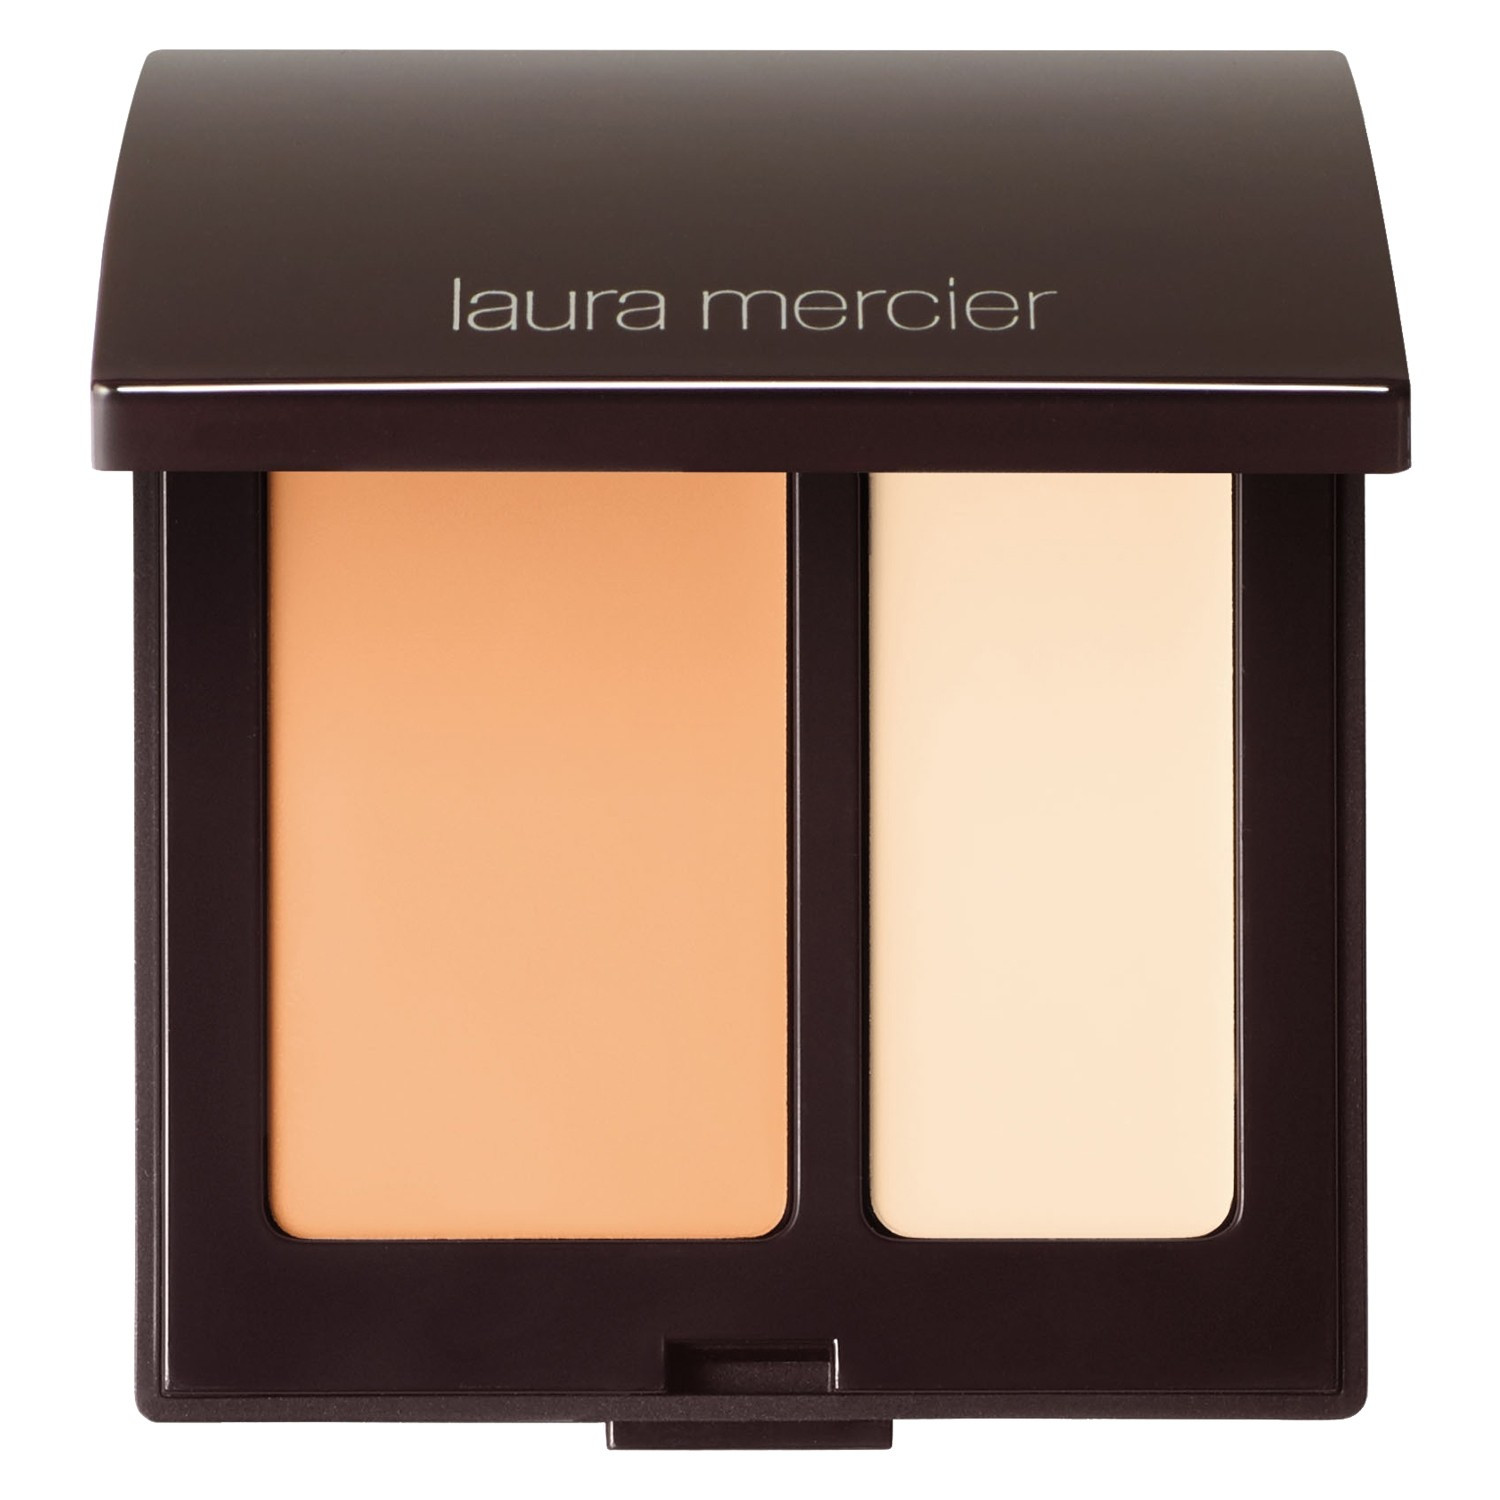 Laura Mercier's Secret Camouflage